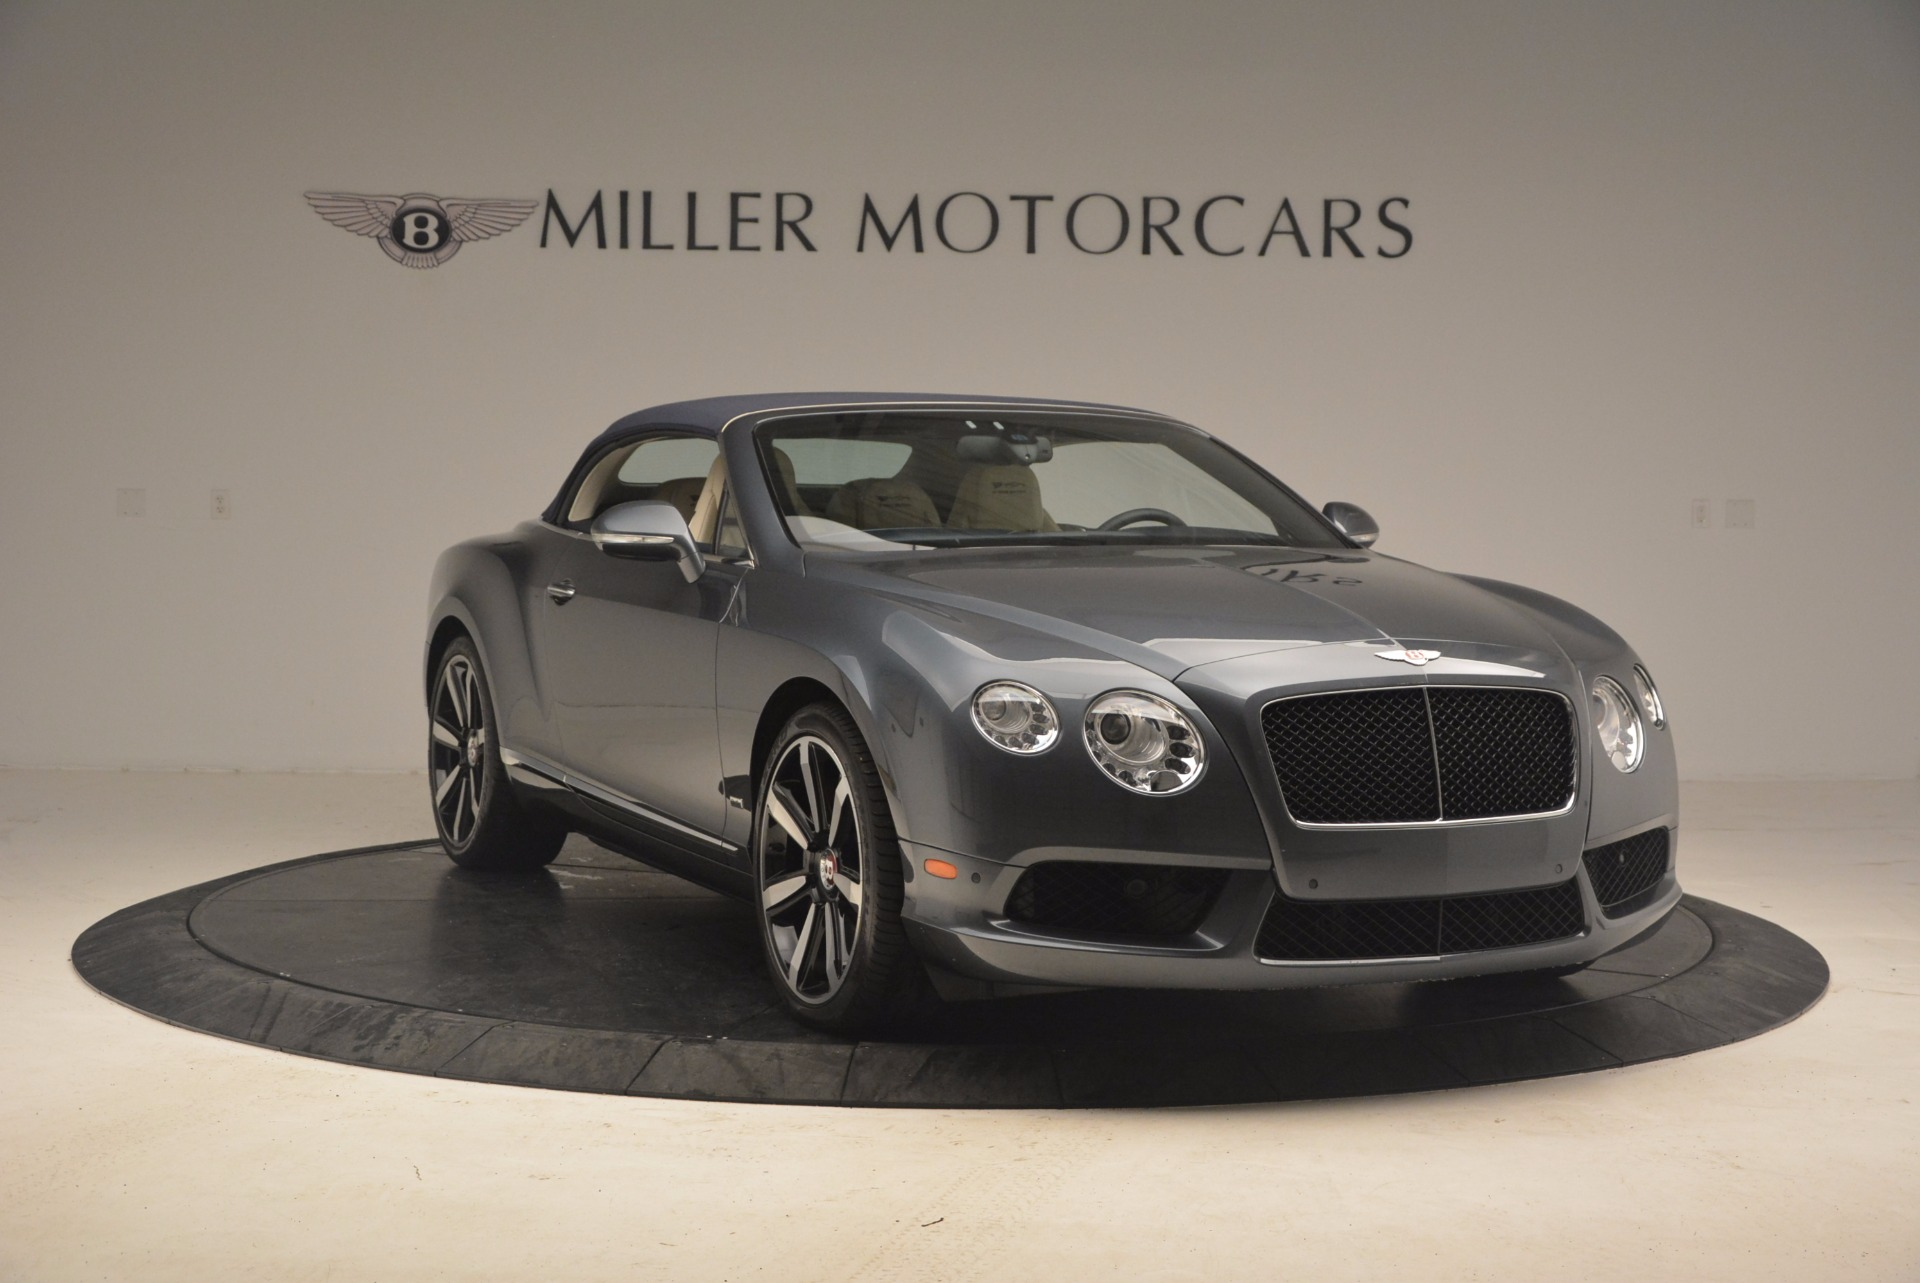 Used 2013 Bentley Continental GT V8 Le Mans Edition, 1 of 48 For Sale In Greenwich, CT 1288_p24